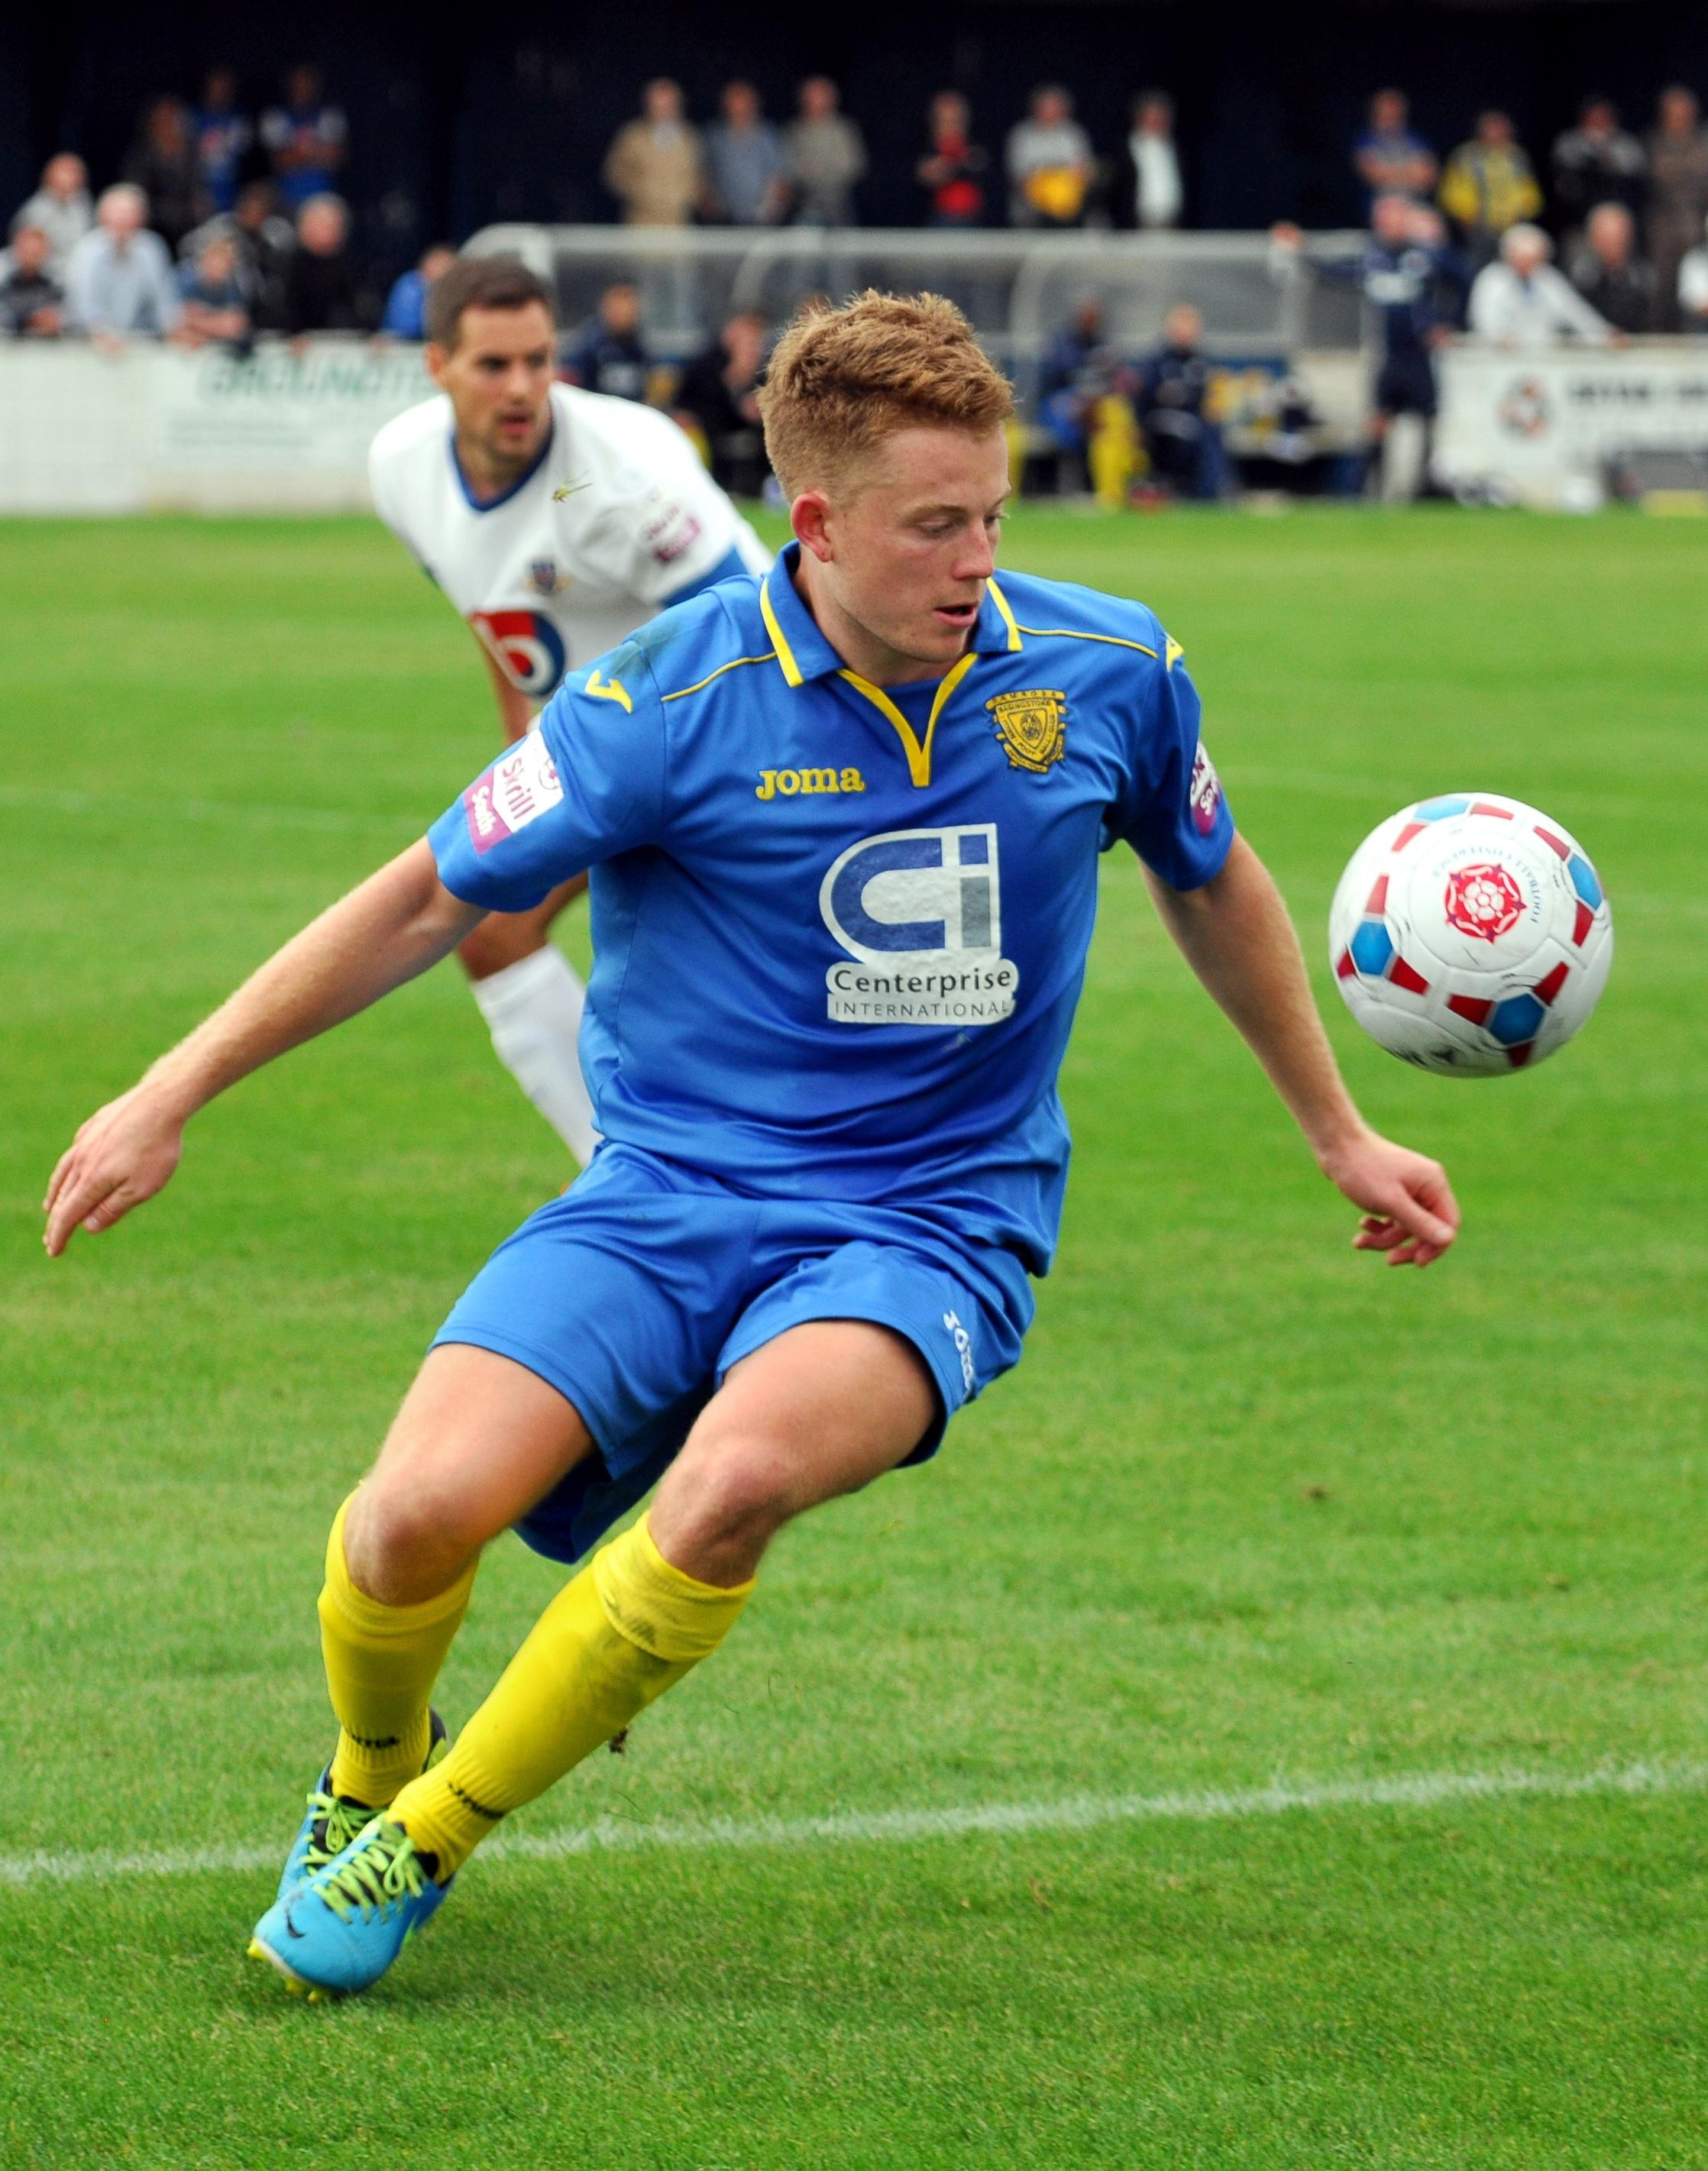 Simon Dunn made a good contribution after coming on as a substitute, but he could not inspire Basingstoke Town to victory.